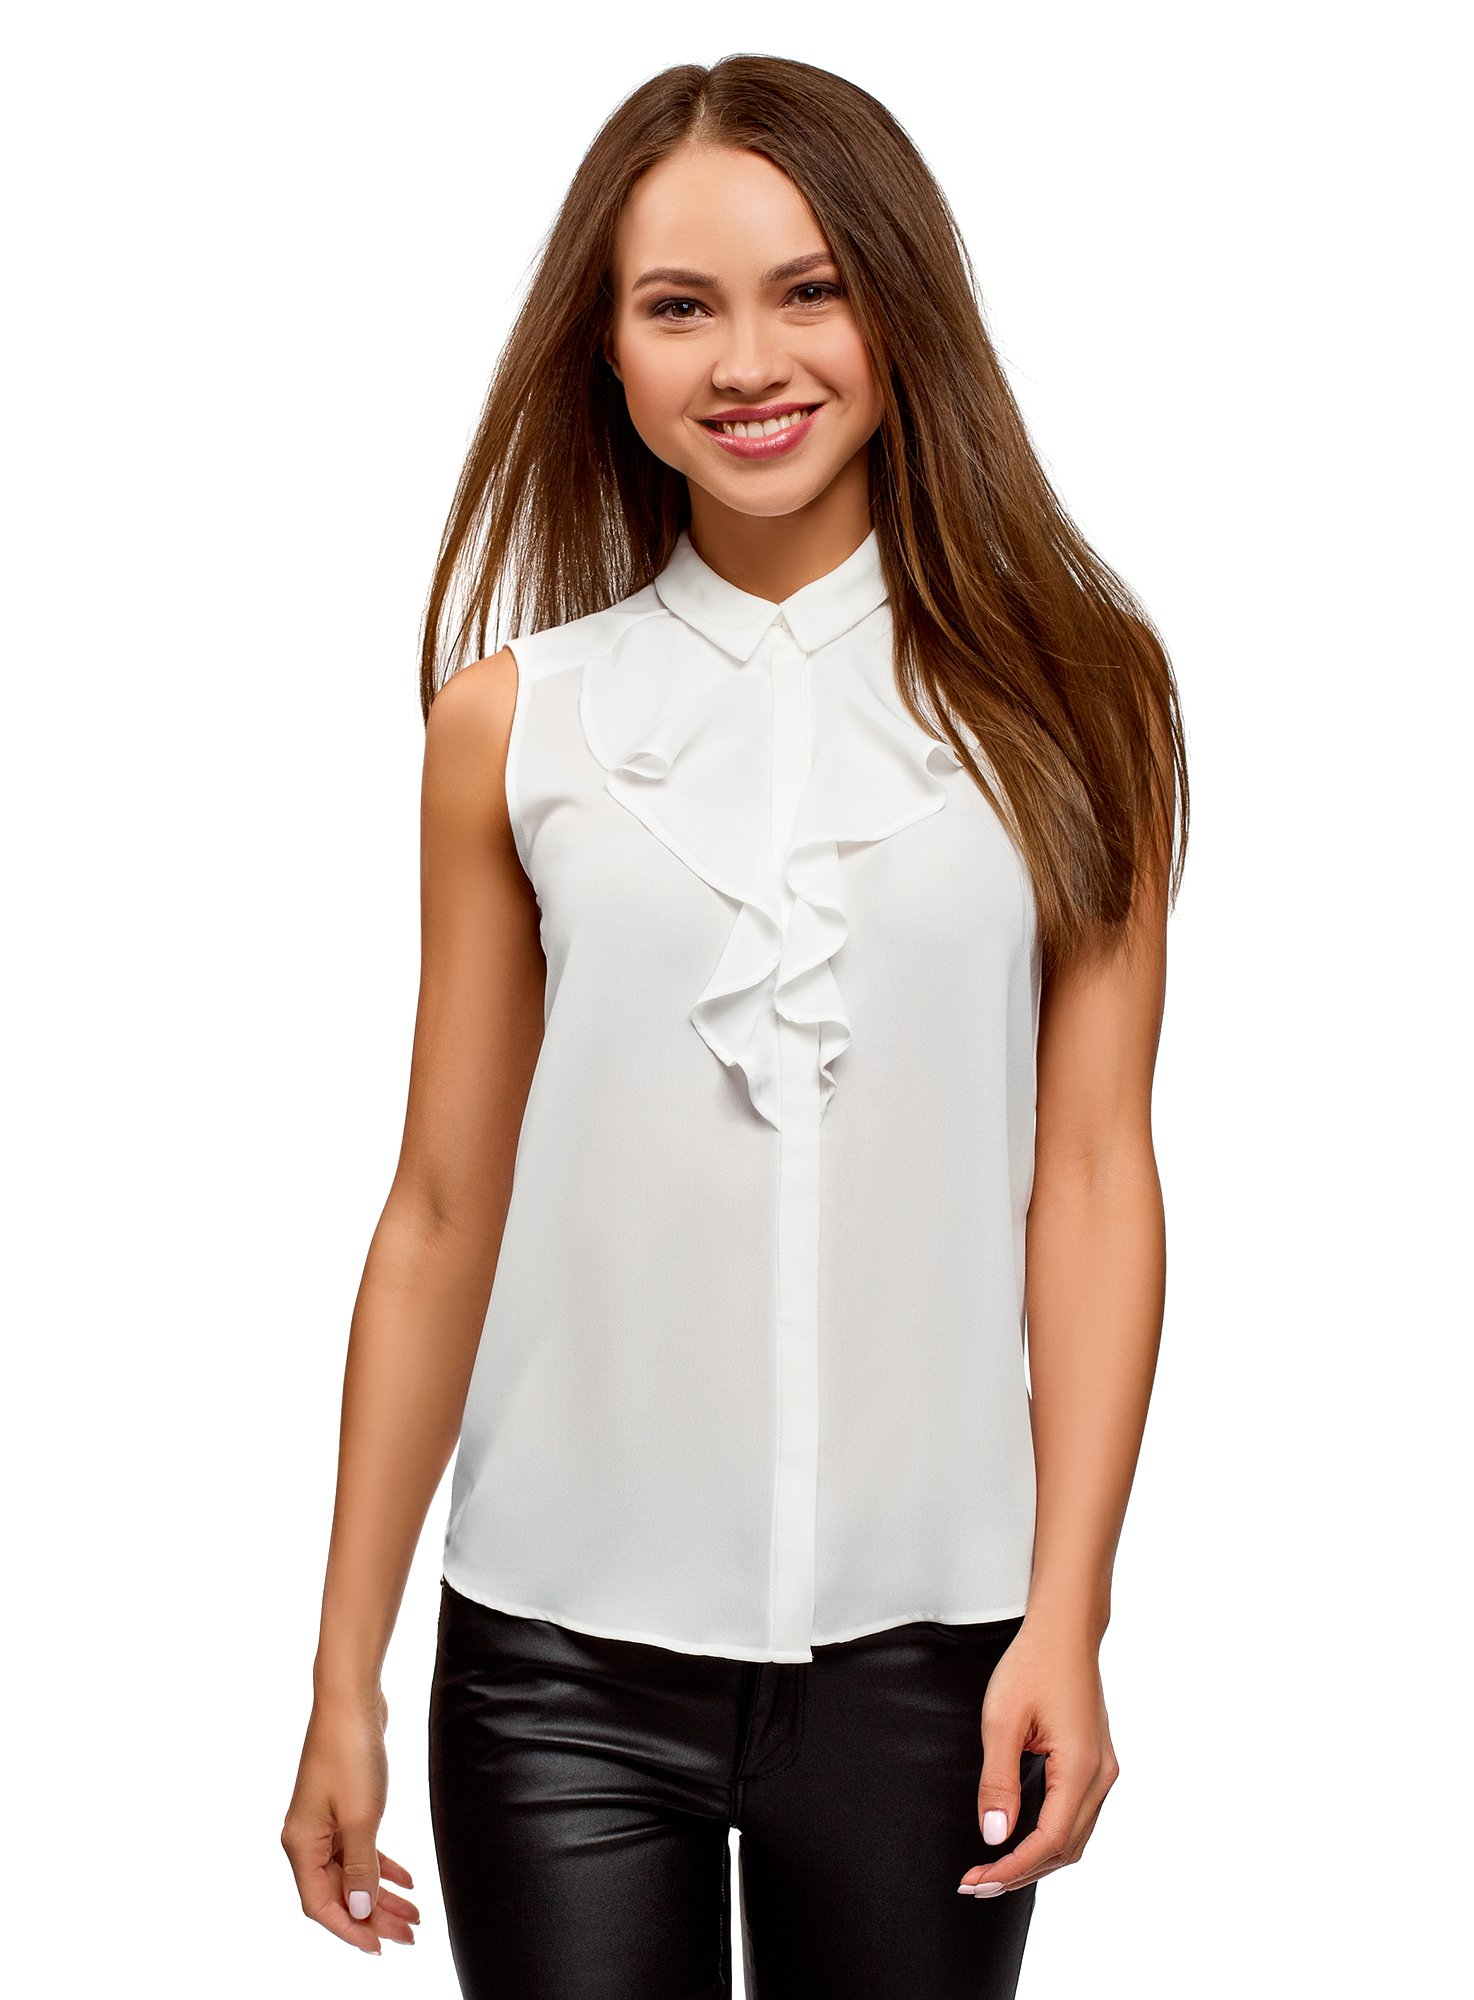 oodji Collection Women's Flounce Collar Top in Flowing Fabric, White, 4